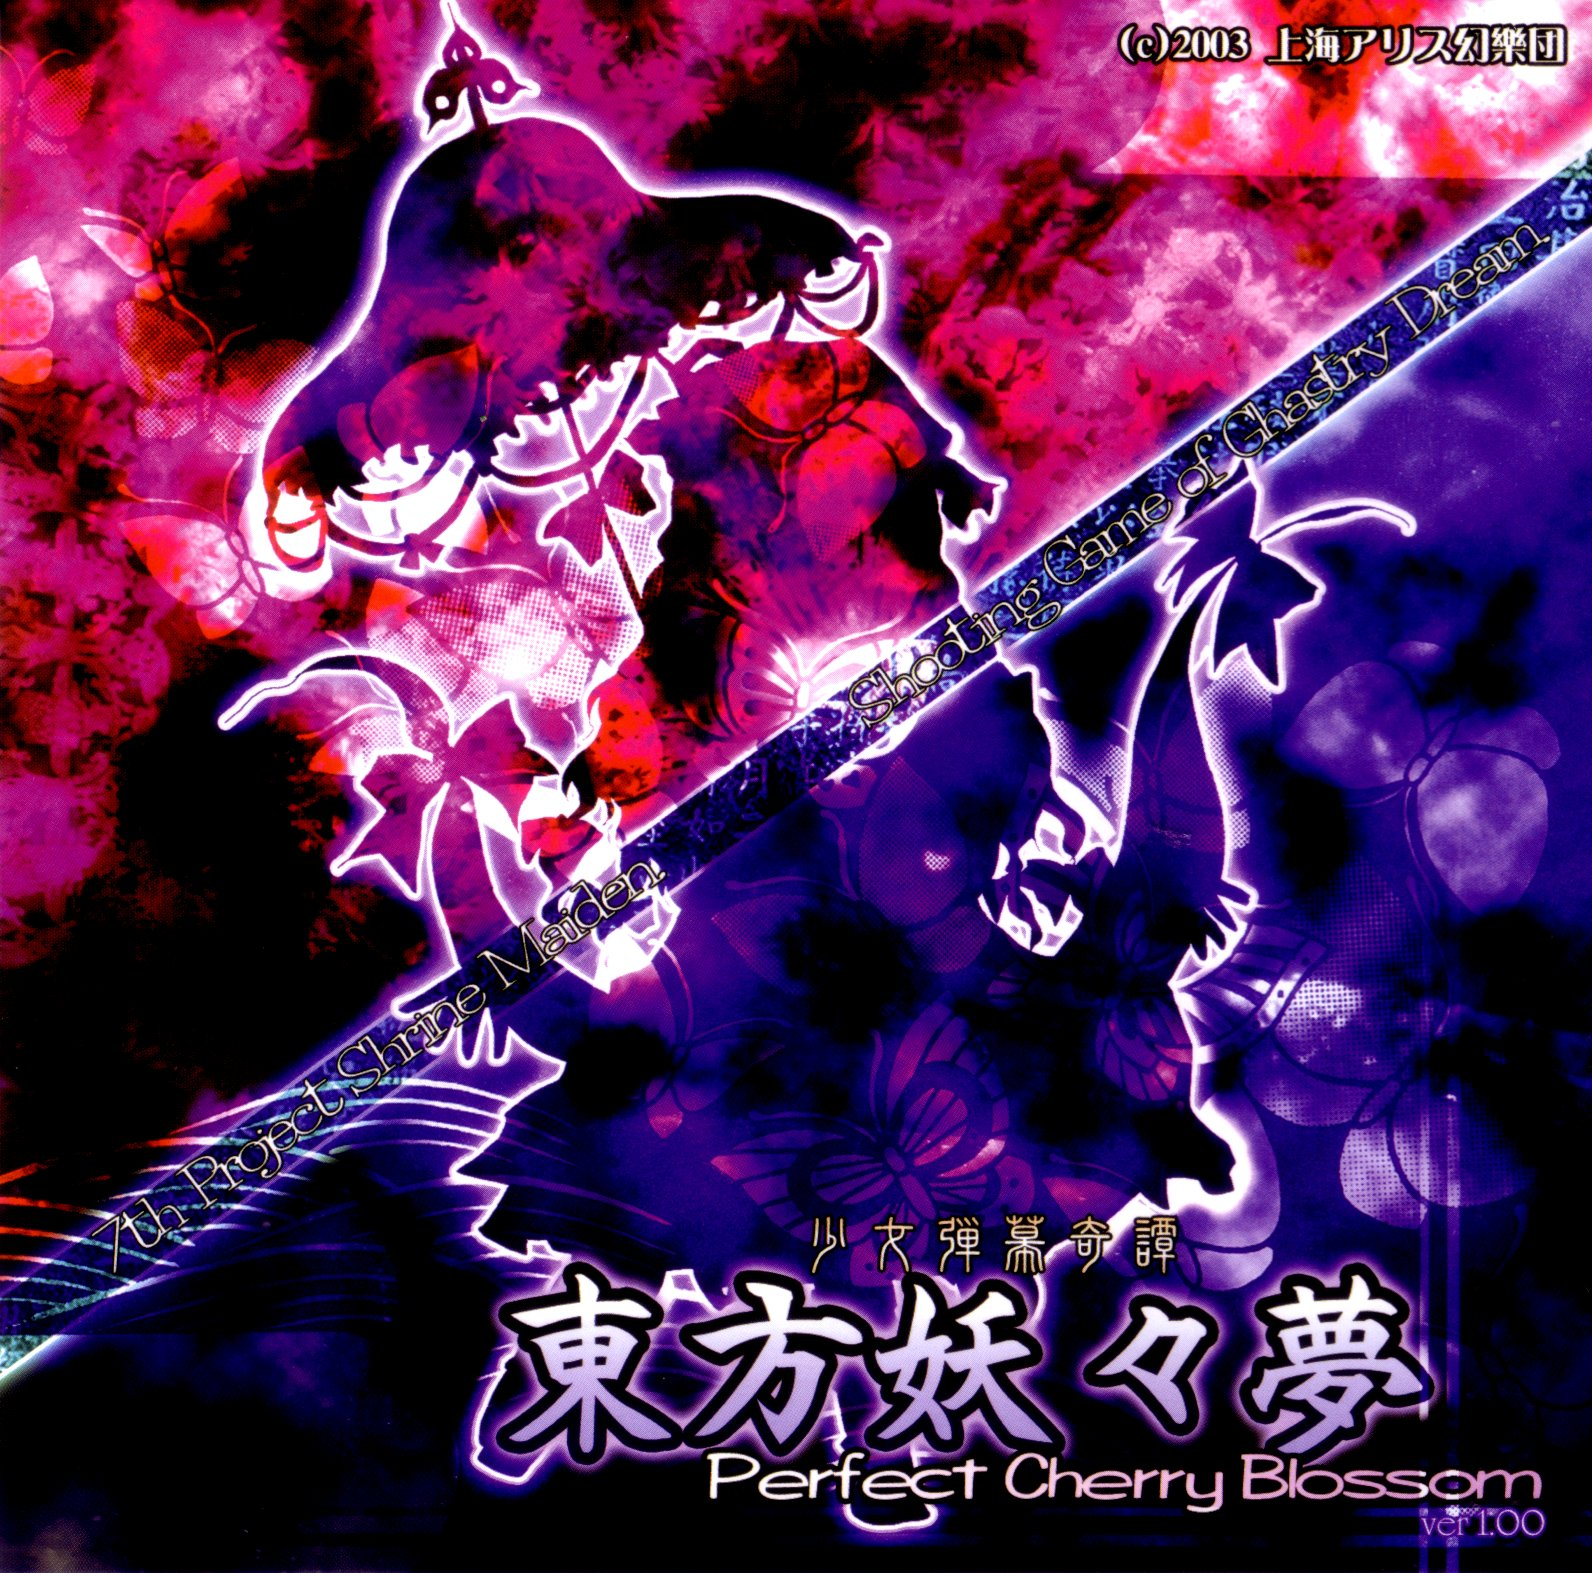 http://images.wikia.com/touhou/images/5/52/Th07cover.jpg